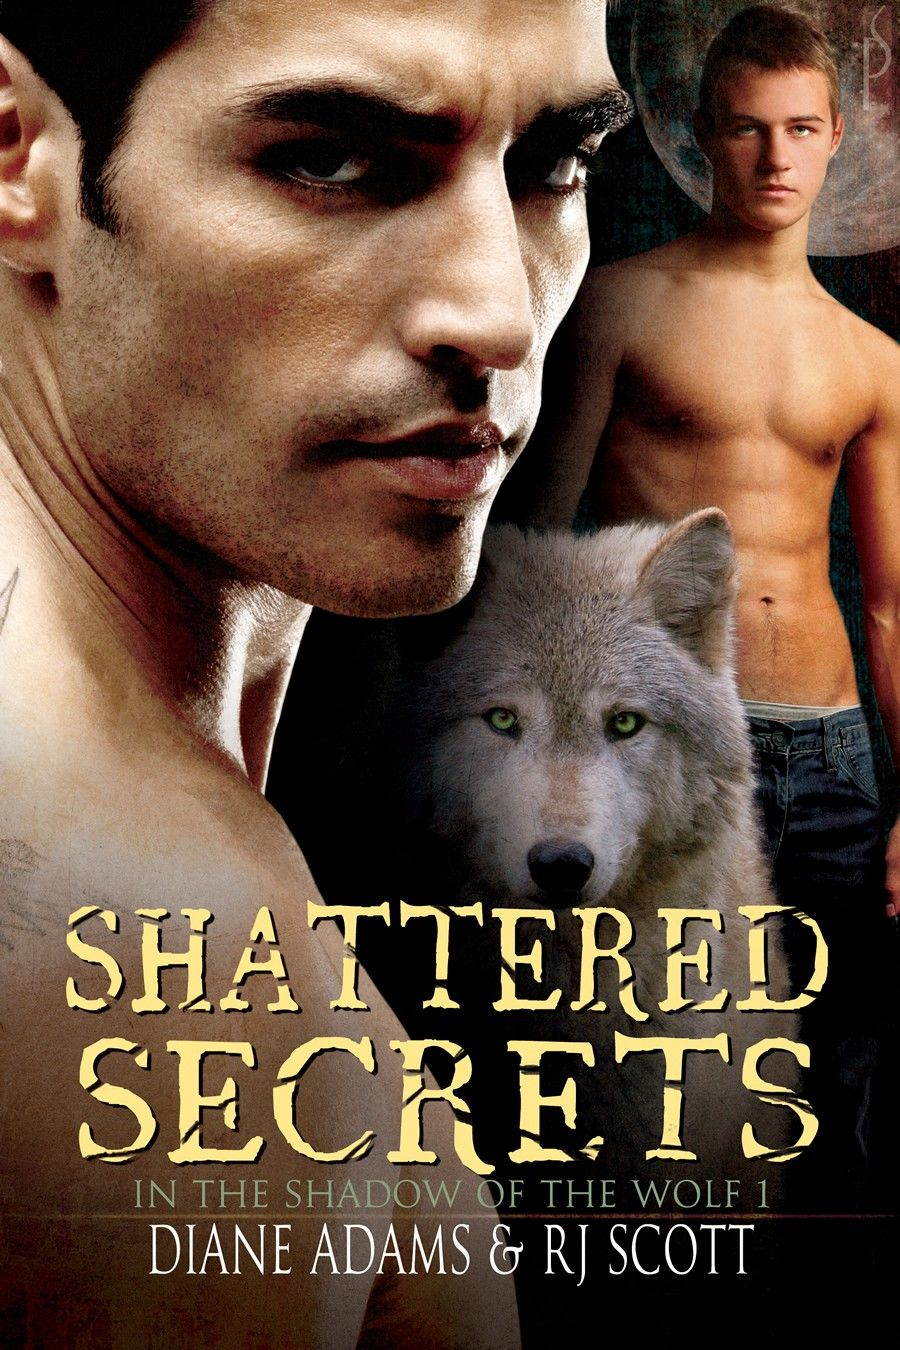 Shattered Secrets (Shadow of the Wolf #1)